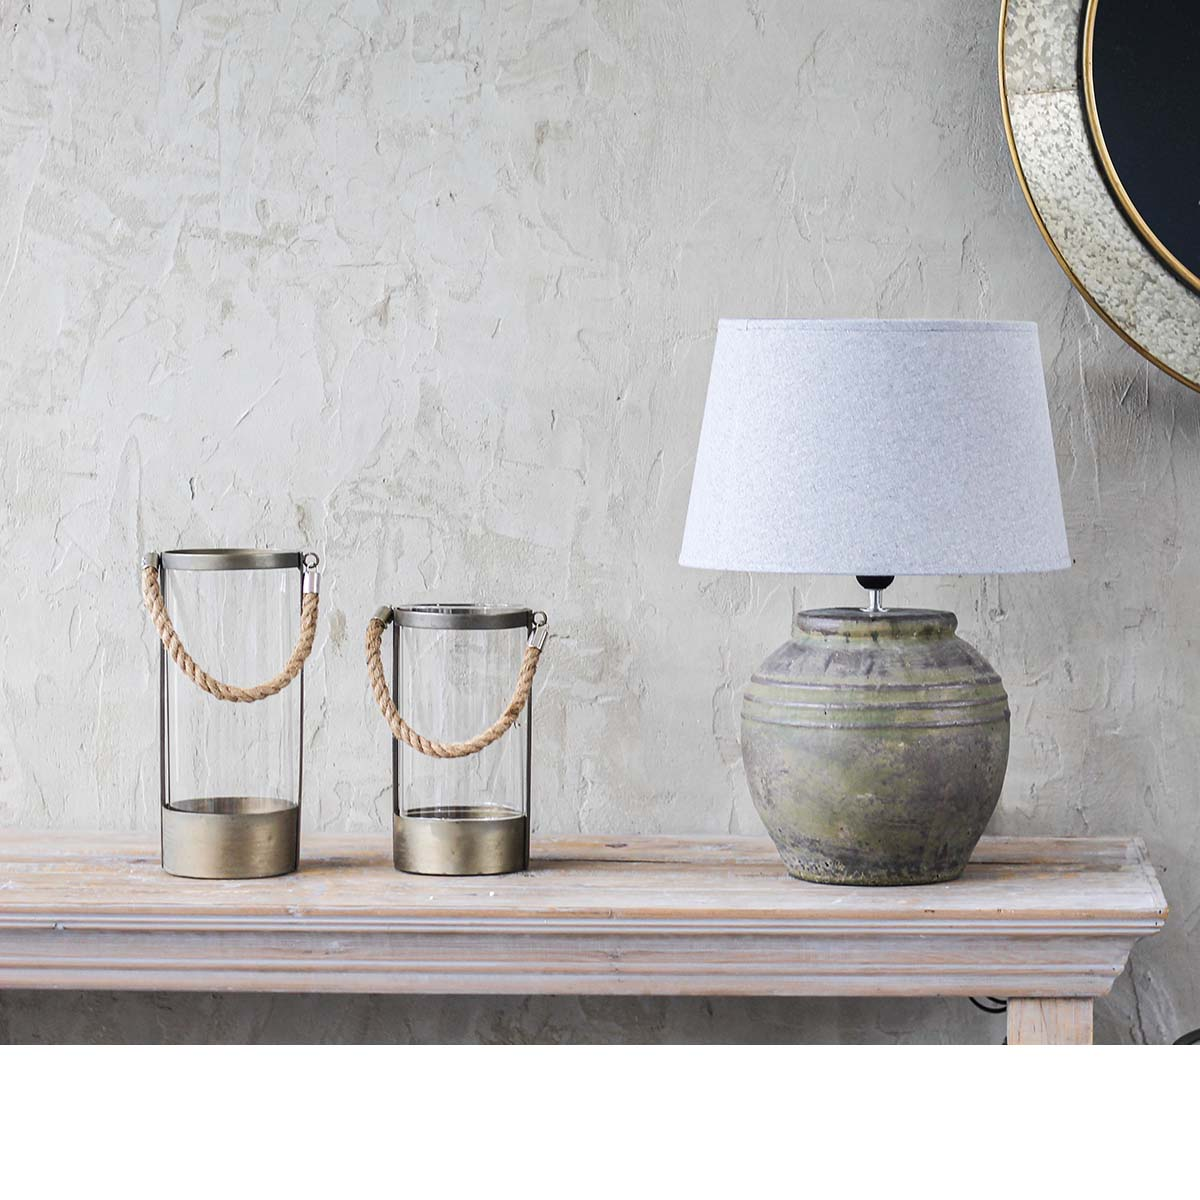 Décor Objects